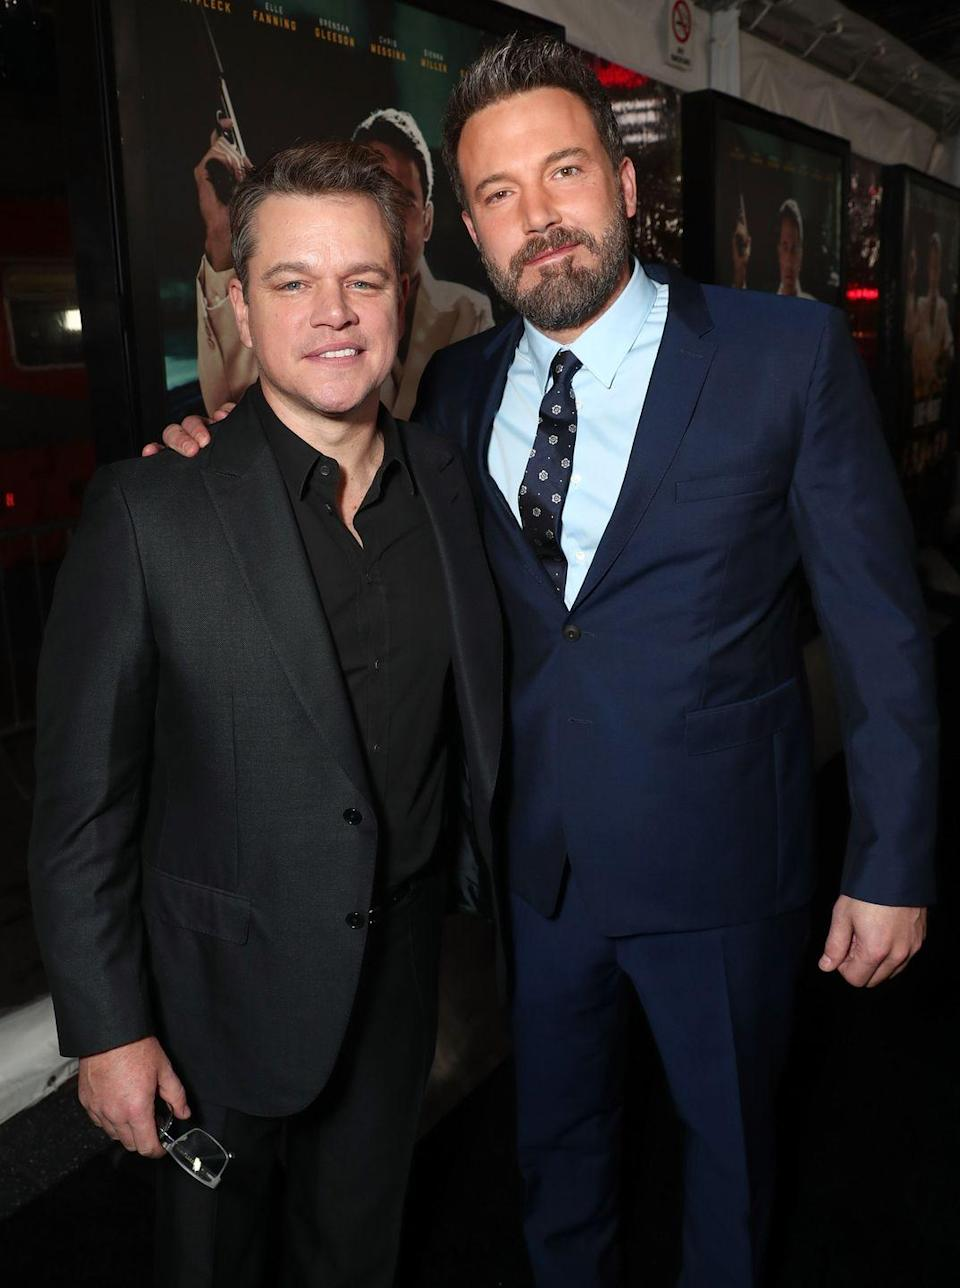 <p>One of Hollywood's most well-known pairs of BFFs, Matt Damon and Ben Affleck, first crossed paths while attending Cambridge Rindge and Latin School in Boston for High School. Their story continued in Los Angeles, where they lived together right before collaborating on <em>Good Will Hunting</em>, the film that would ultimately change the trajectory of their careers.</p>